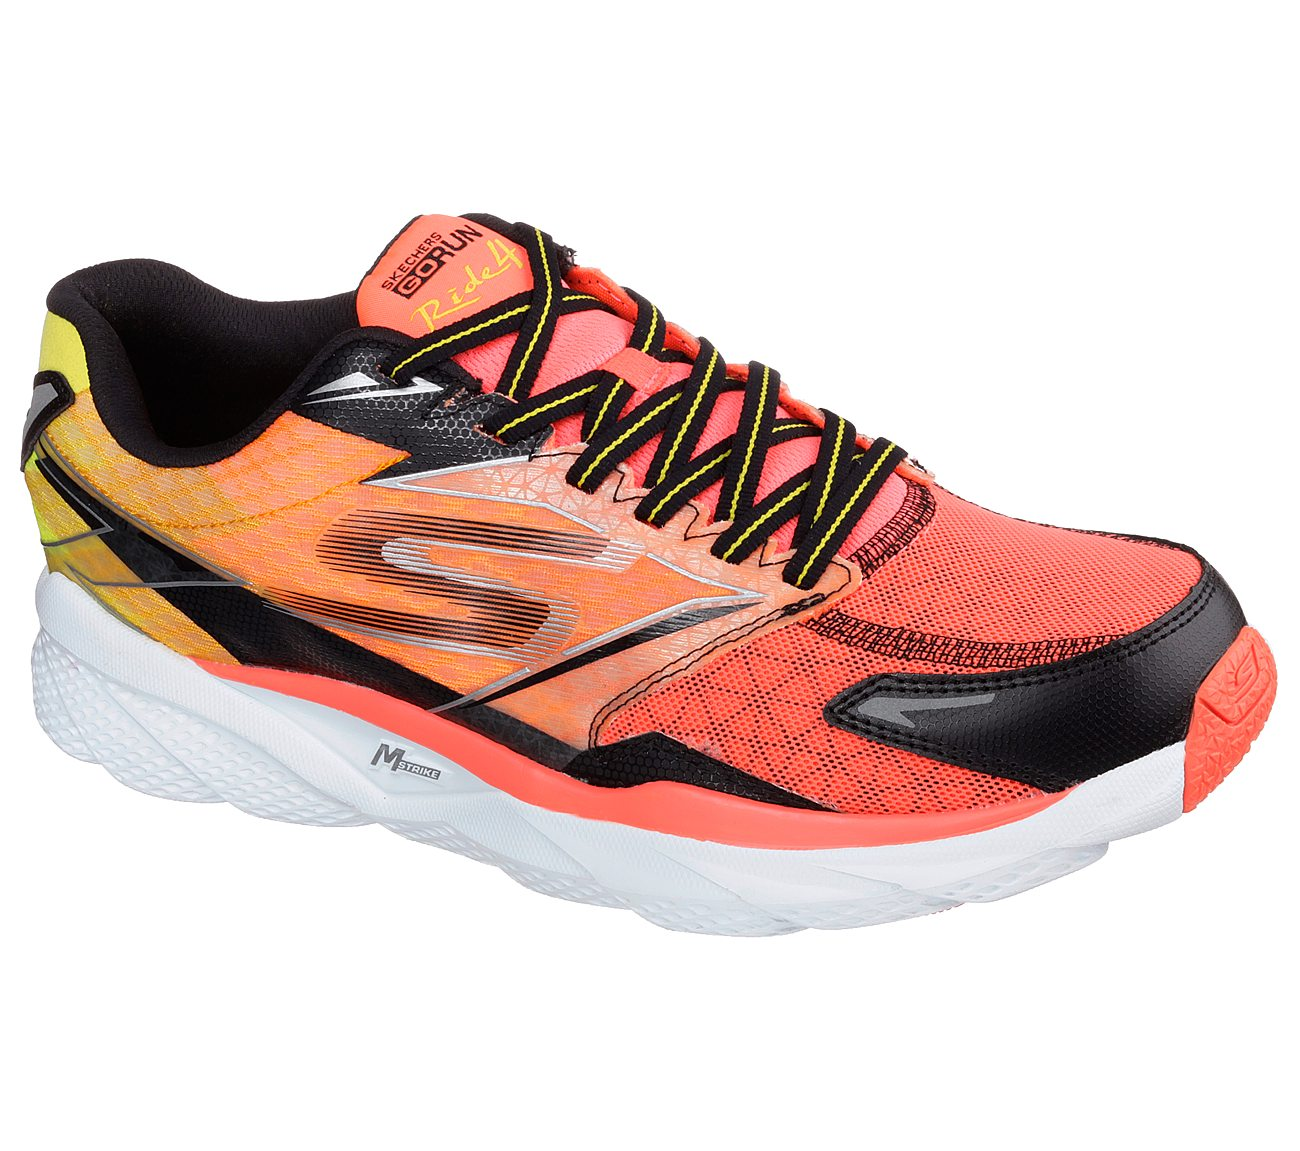 4c92abebf168 Buy SKECHERS Skechers GOrun Ride 4 Skechers Performance Shoes only ...